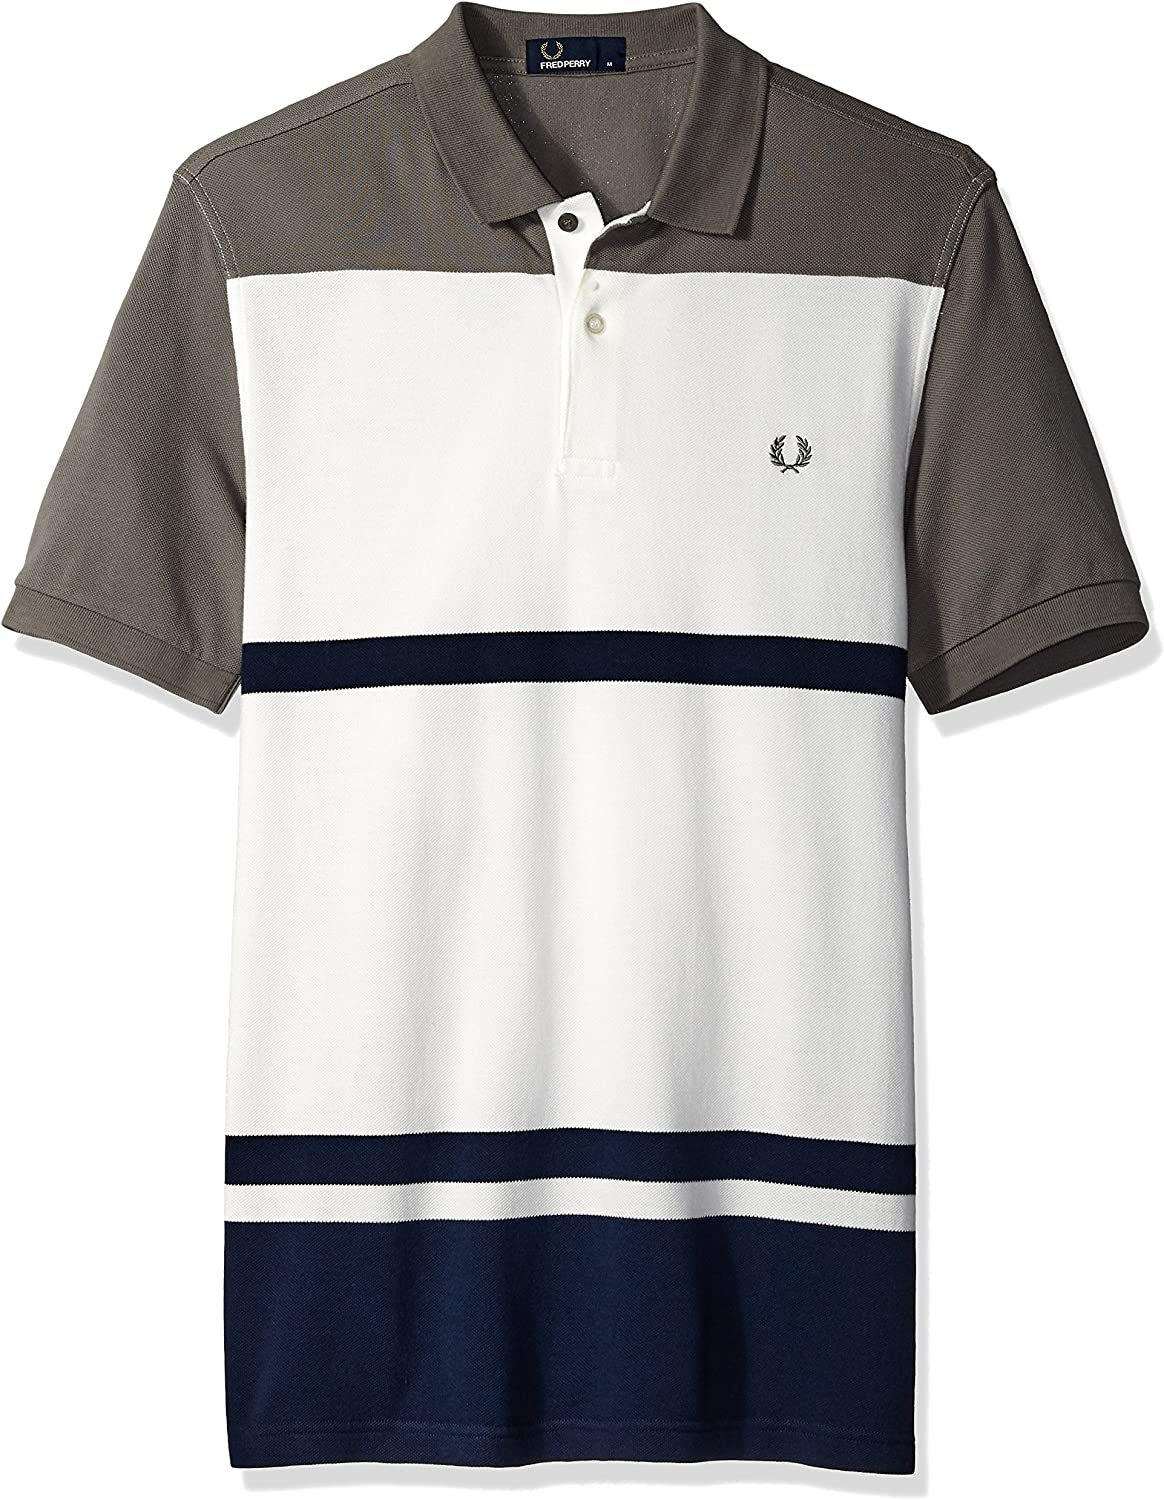 Fred Perry Hombres M4529 Manga Corta Camisa Polo - Multi - Large: Amazon.es: Ropa y accesorios